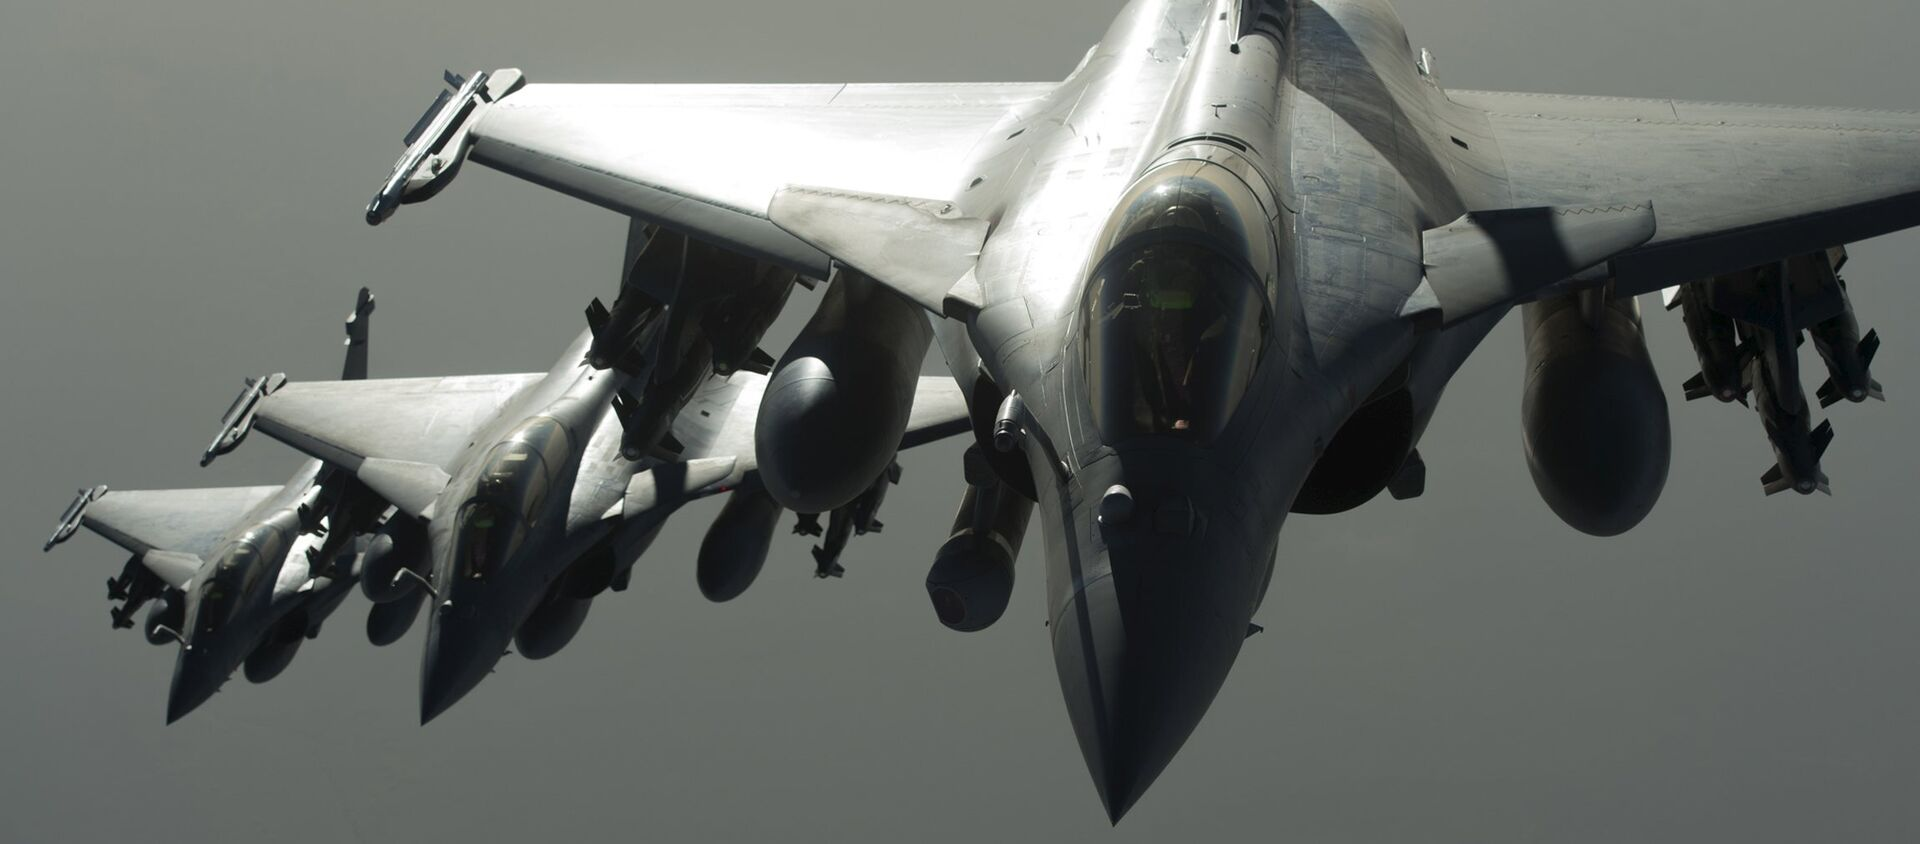 French Army Rafale fighter jets are seen in flight during an operation against Syria - Sputnik France, 1920, 08.02.2021